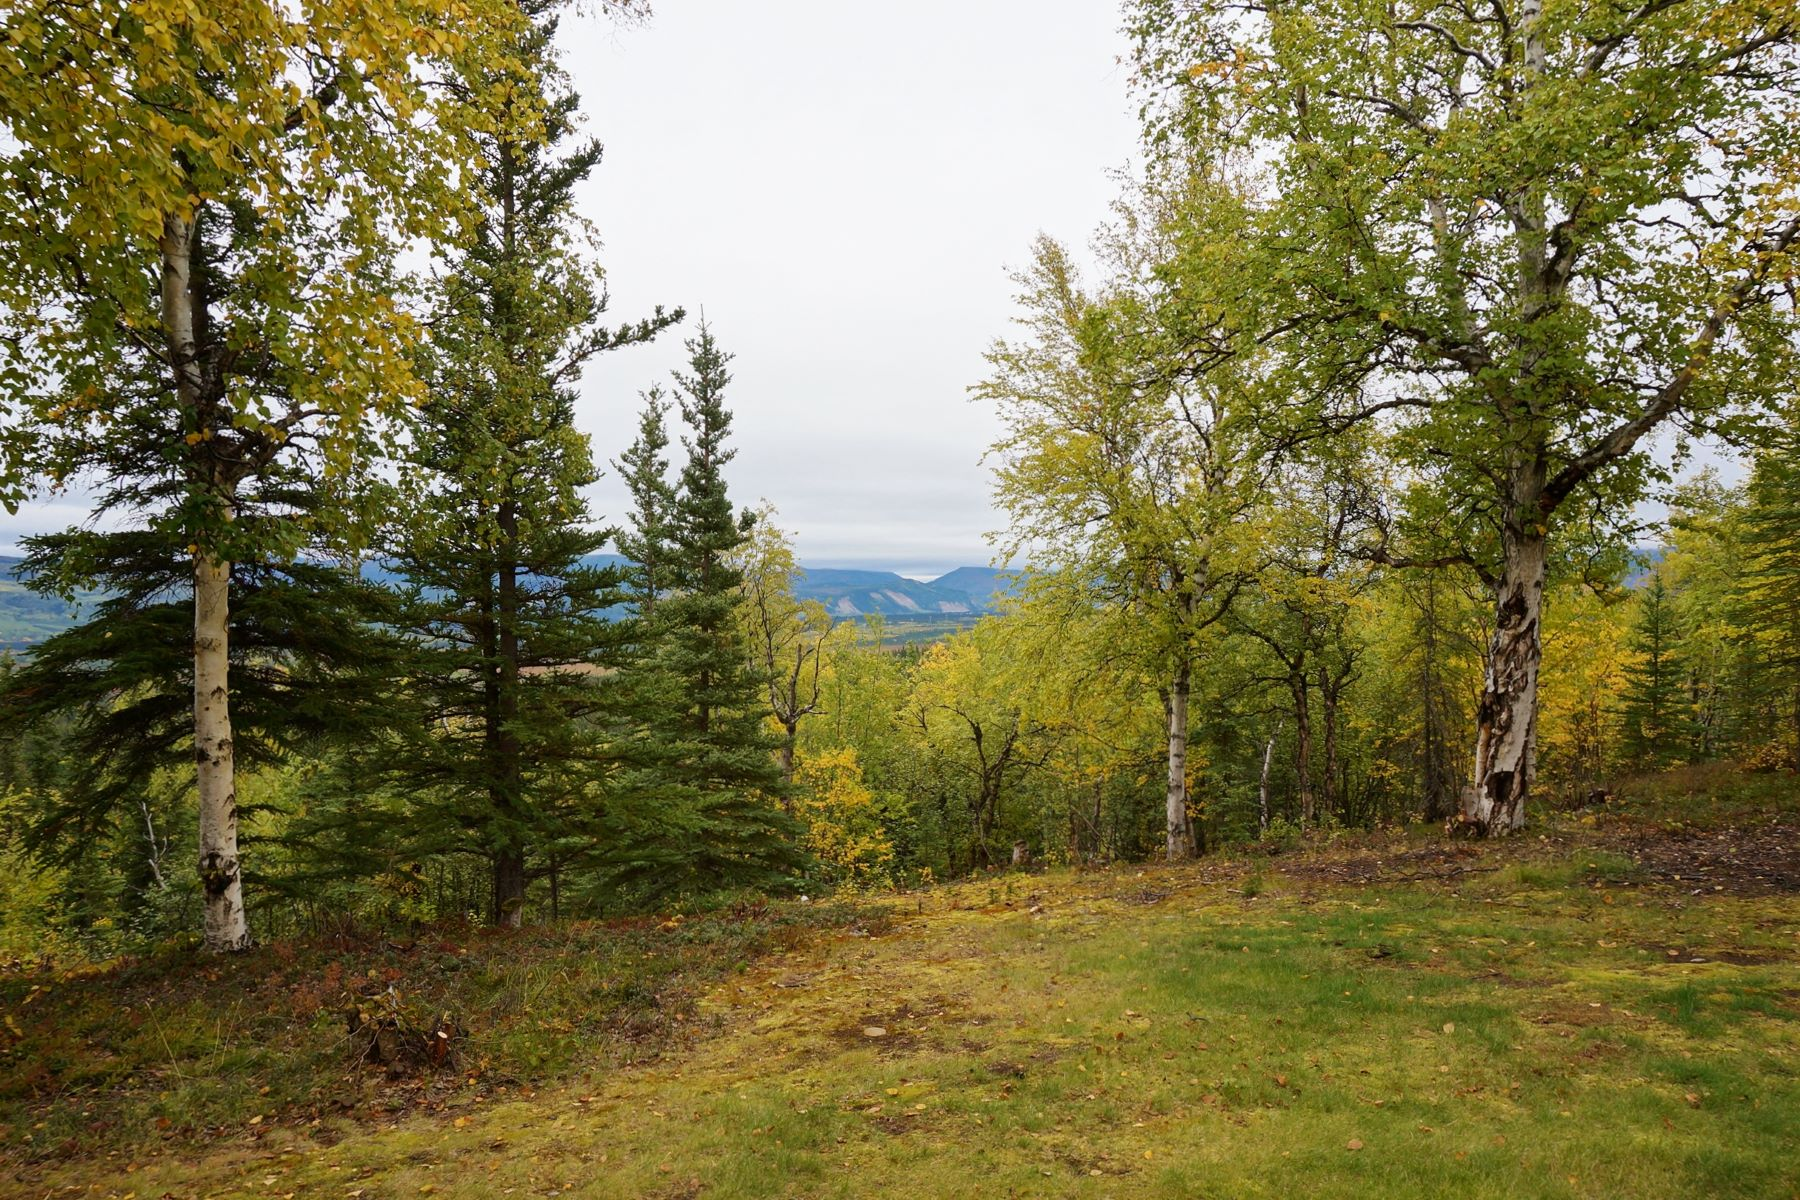 Land for Sale at Lot 6 Ridgetop Cabins Road Ridgetop Subdivision Healy, Alaska 99743 United States